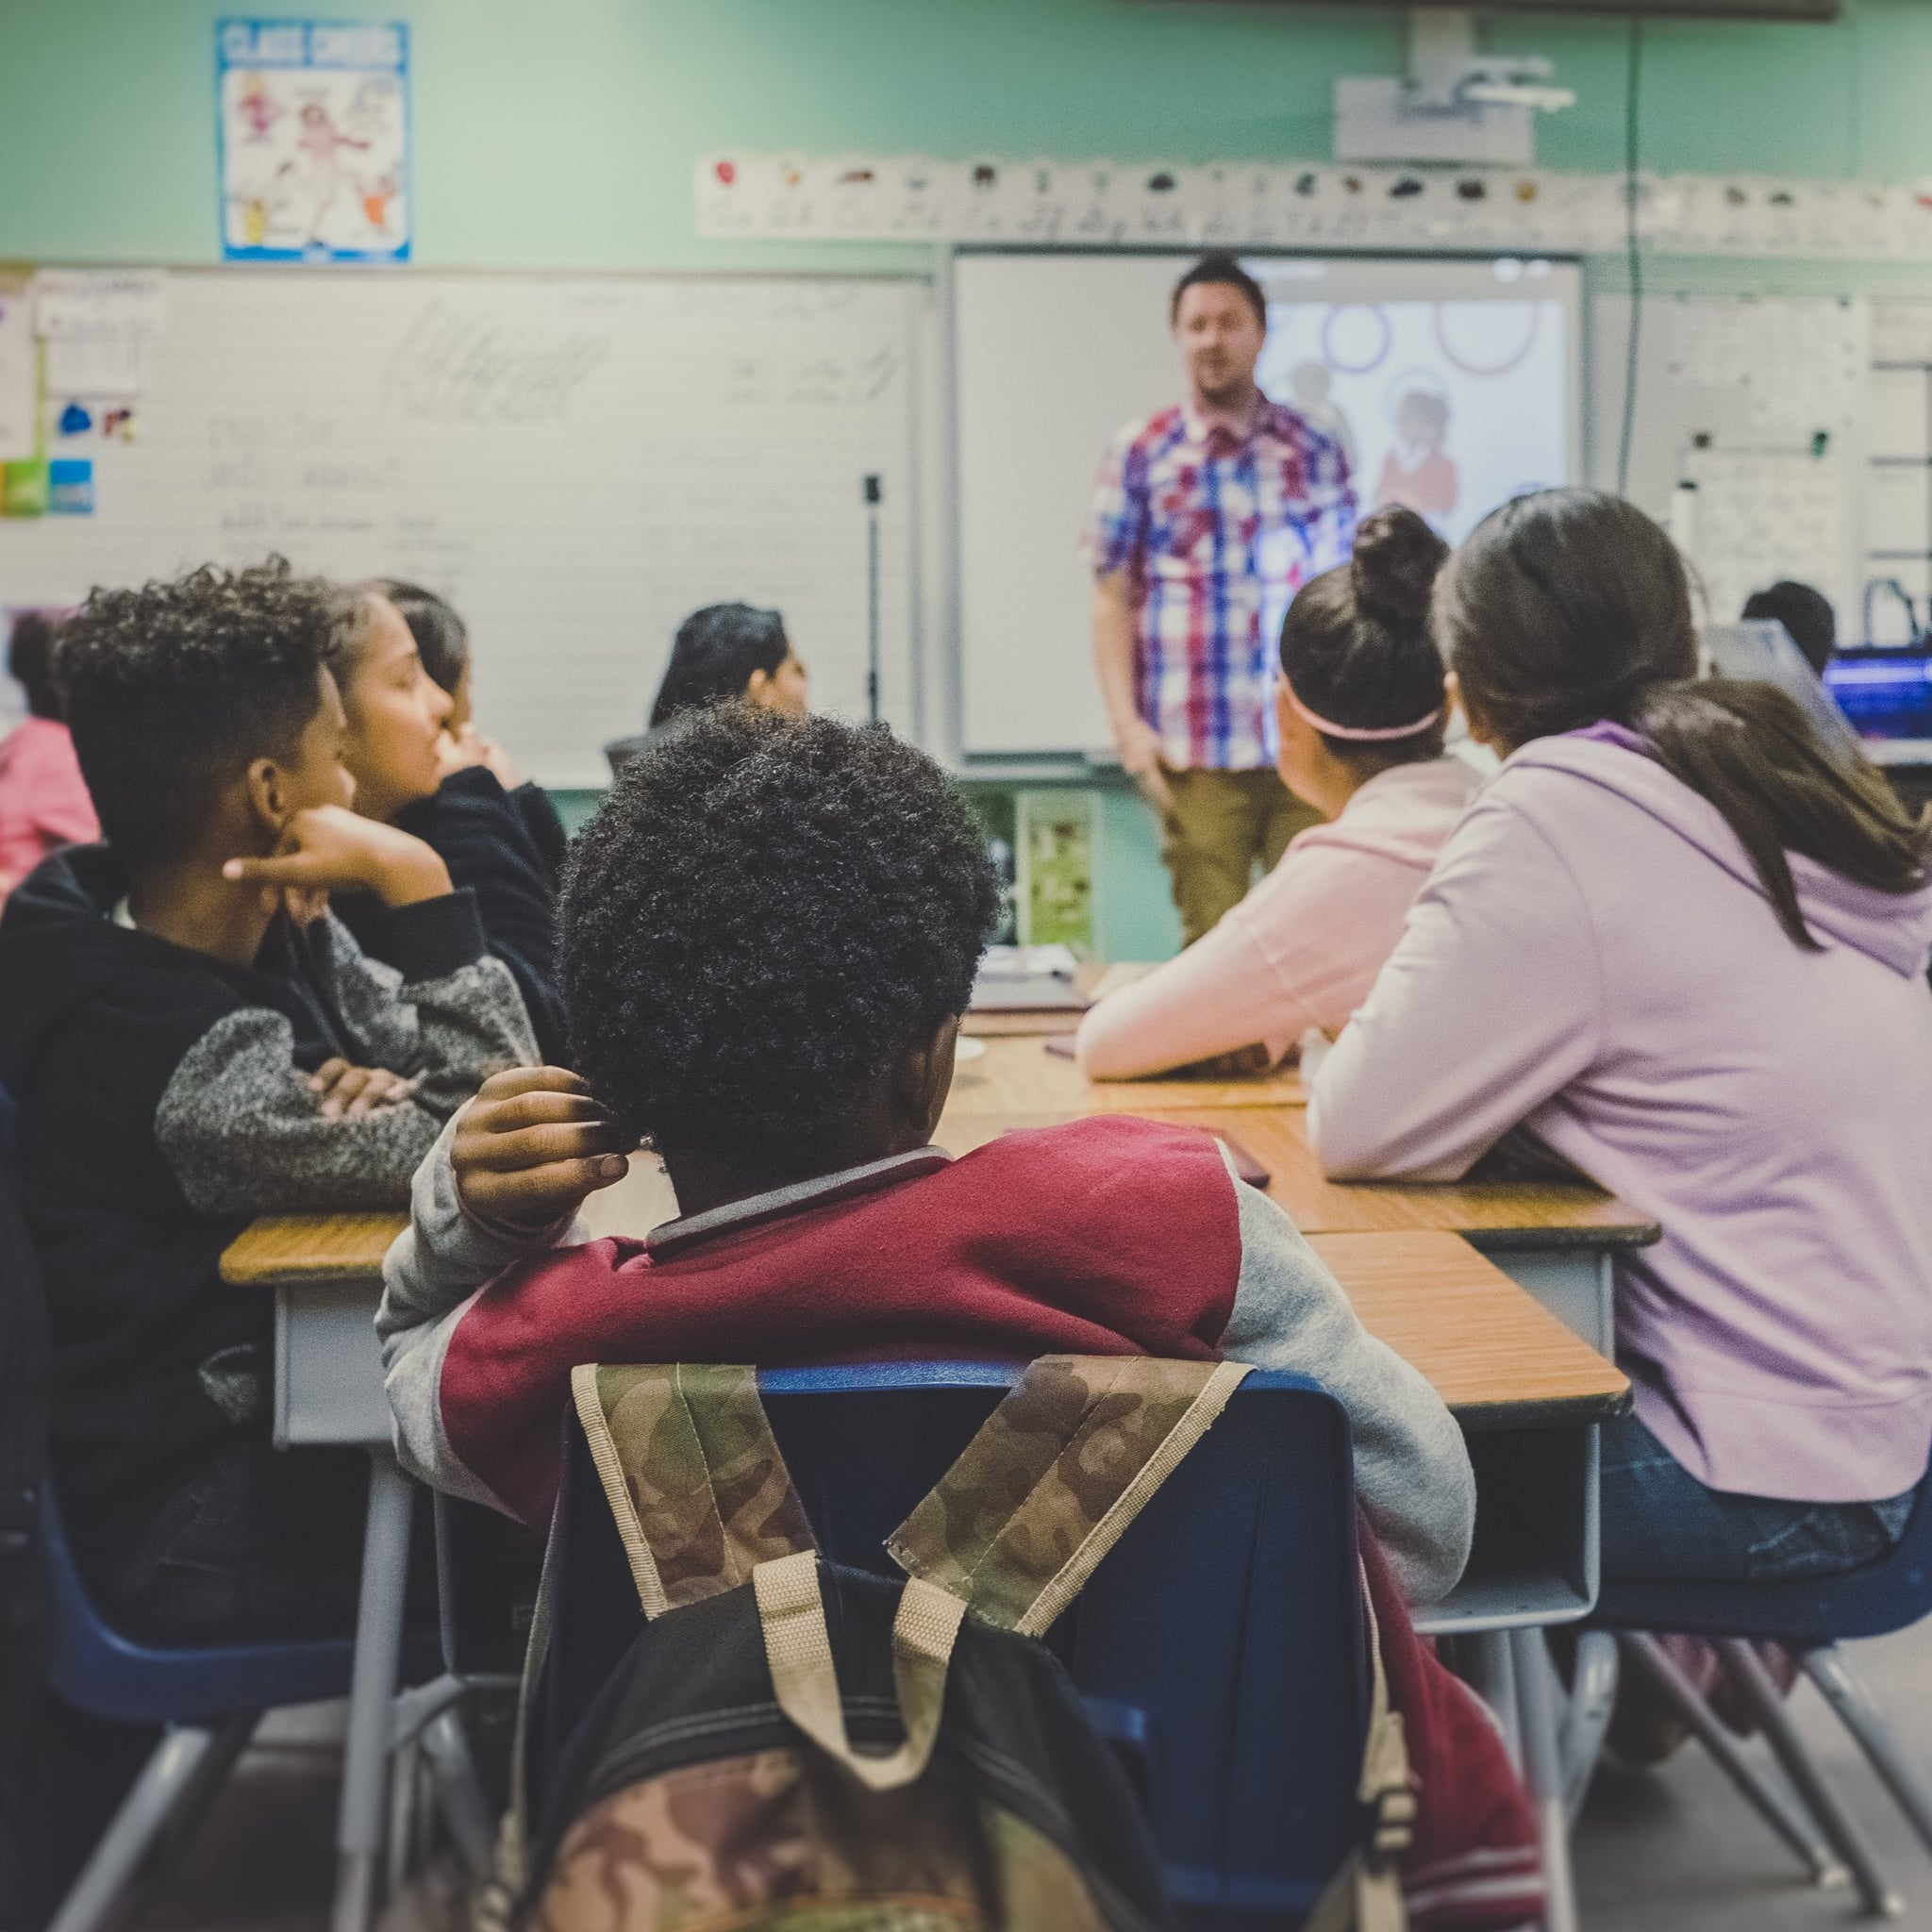 How to Request a Teacher for Your Kid | POPSUGAR Family